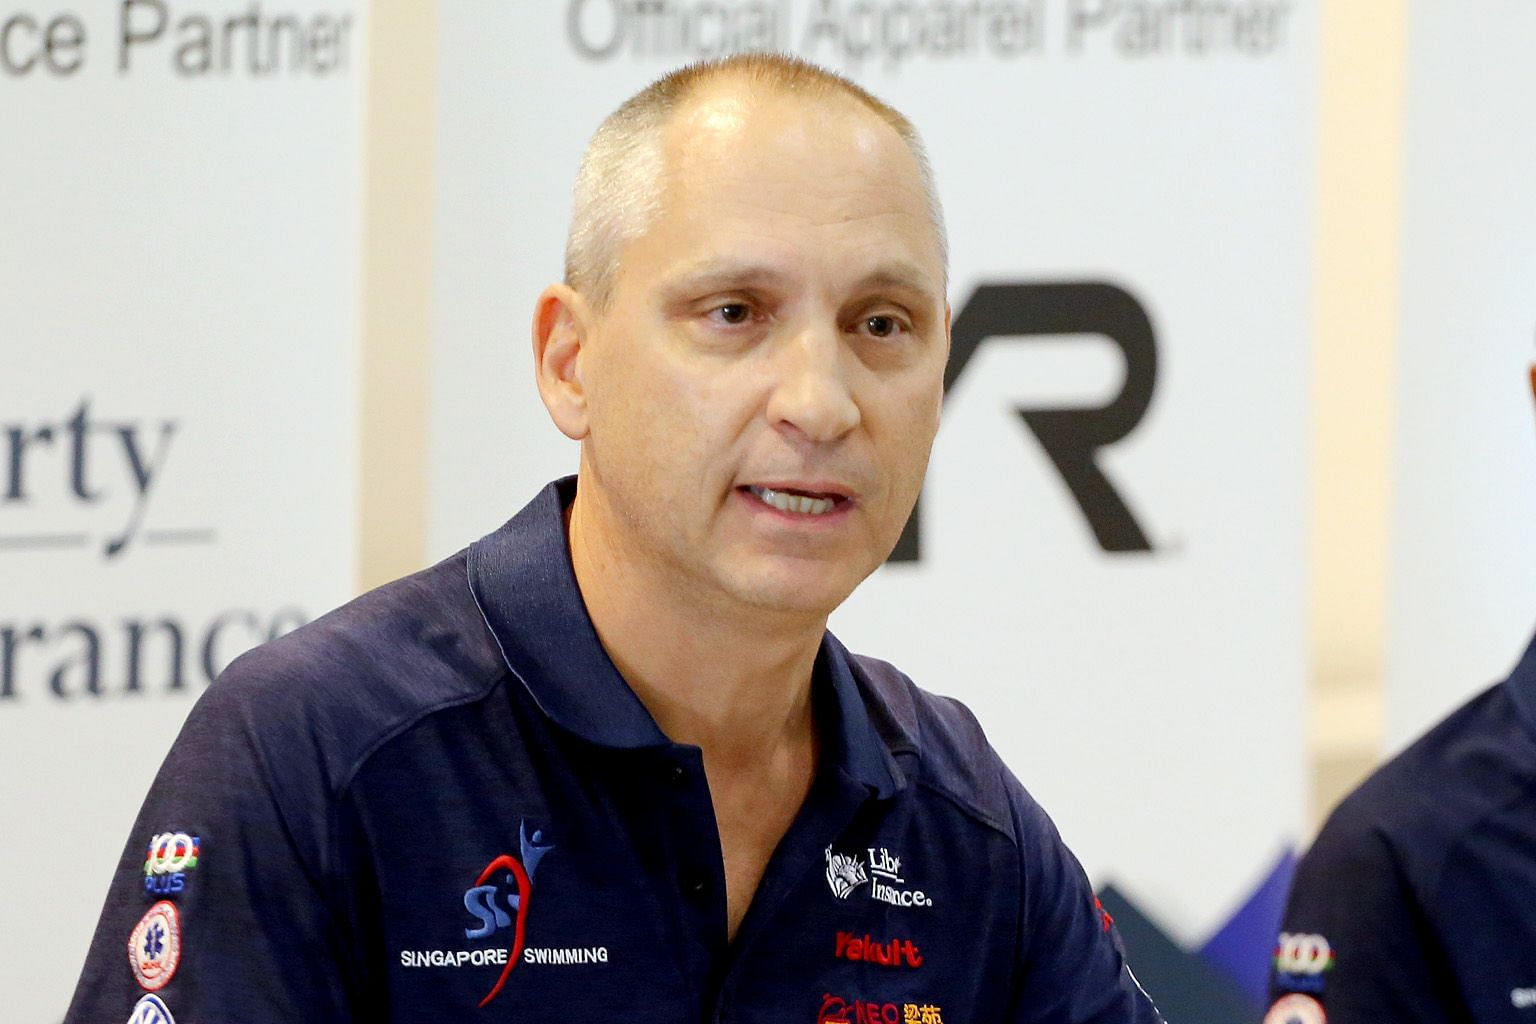 Strengthening the national swimming set-up in as many areas as possible is the aim of Australian Stephan Widmer, who is now six months into his role as national swimming head coach and performance director.